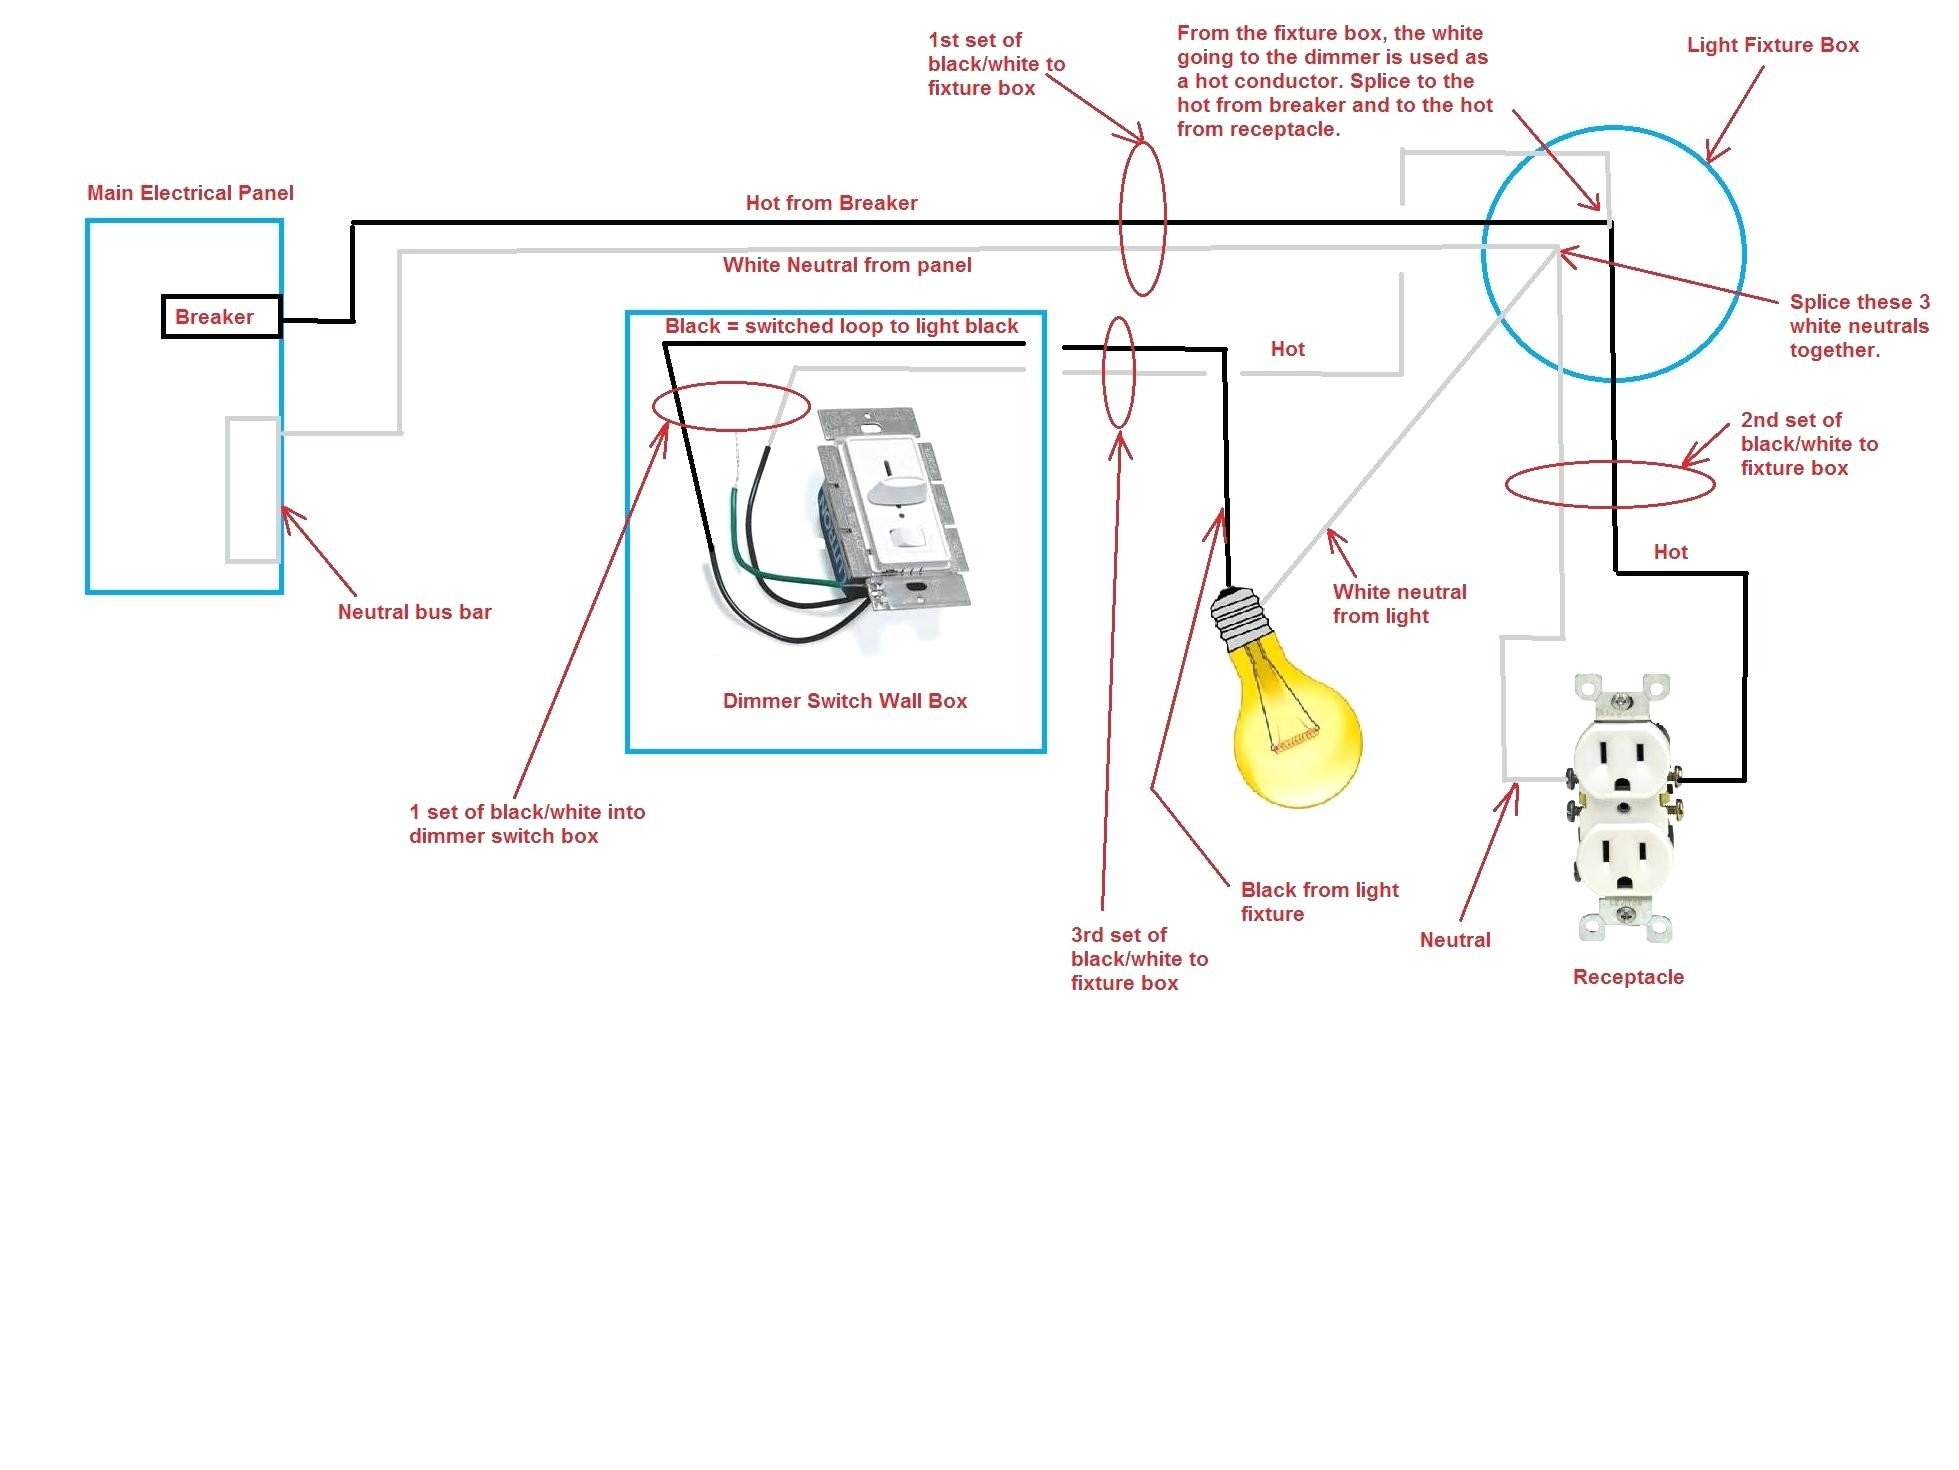 Light socket wiring diagram 2 switches e light wiring diagram gang light socket wiring diagram 2 switches e light wiring diagram gang switch australia electrical of light asfbconference2016 Gallery